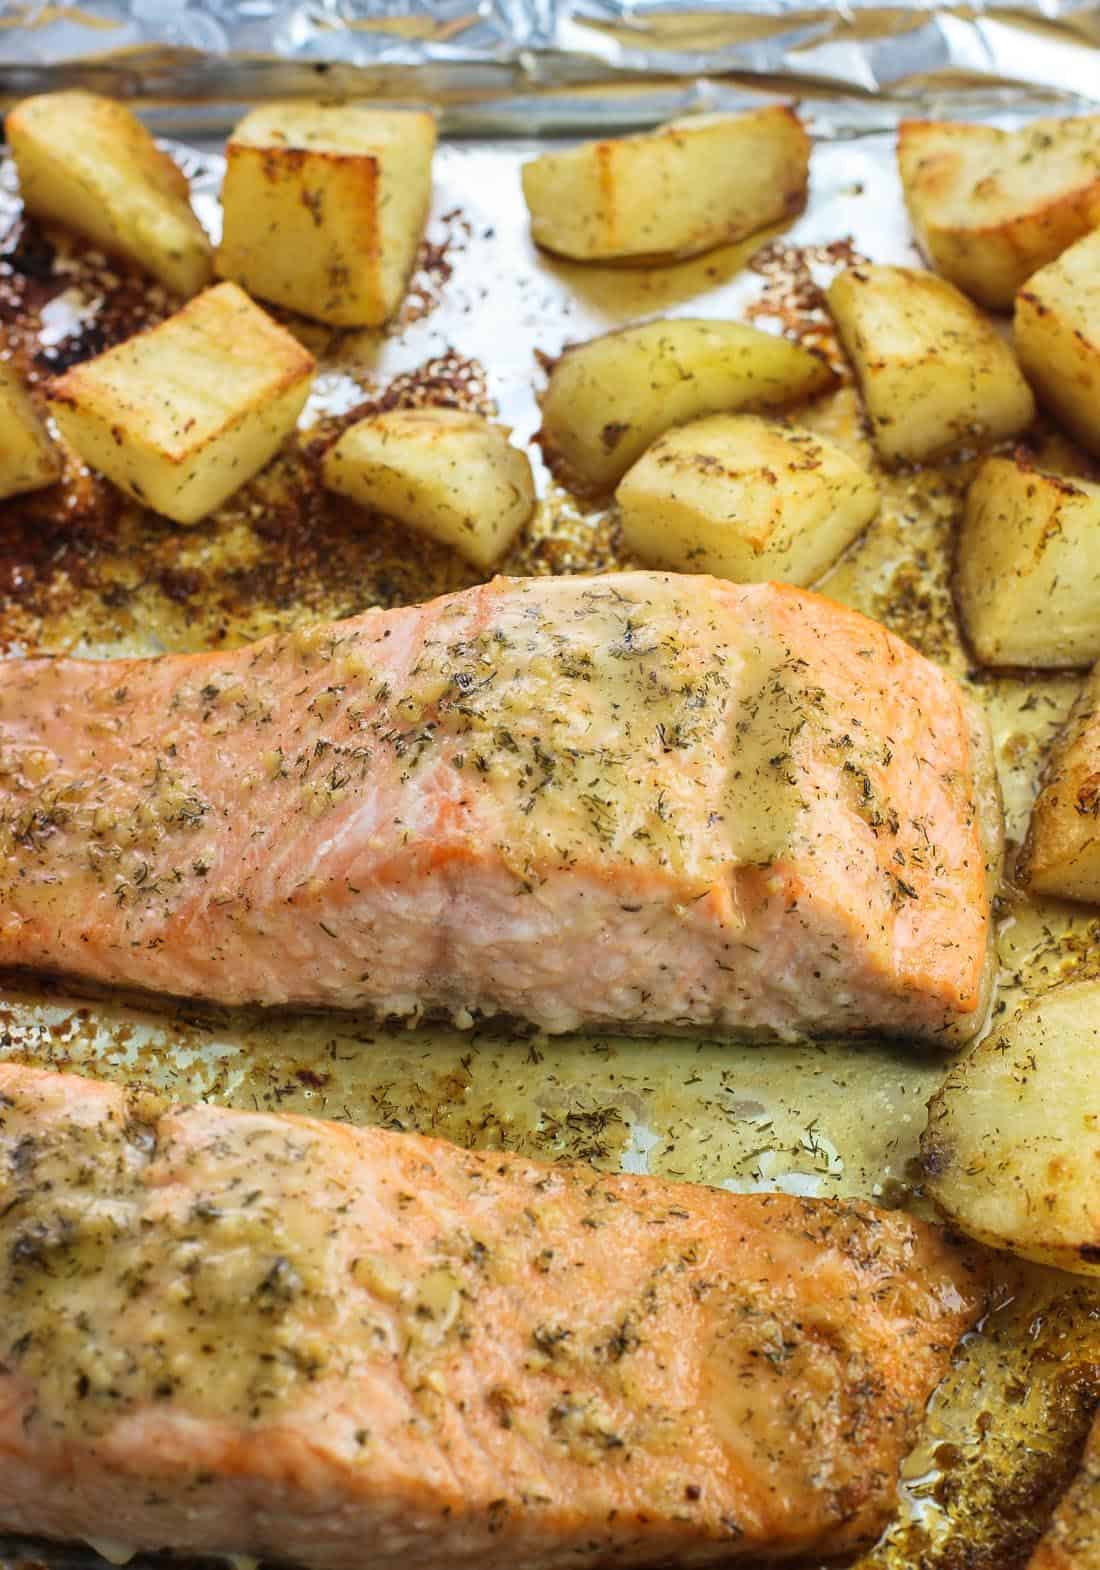 Potatoes and salmon are cooked on the same pan in this sheet pan horseradish salmon and potatoes recipe. A horseradish dill sauce coats the salmon beautifully with no marinating required.